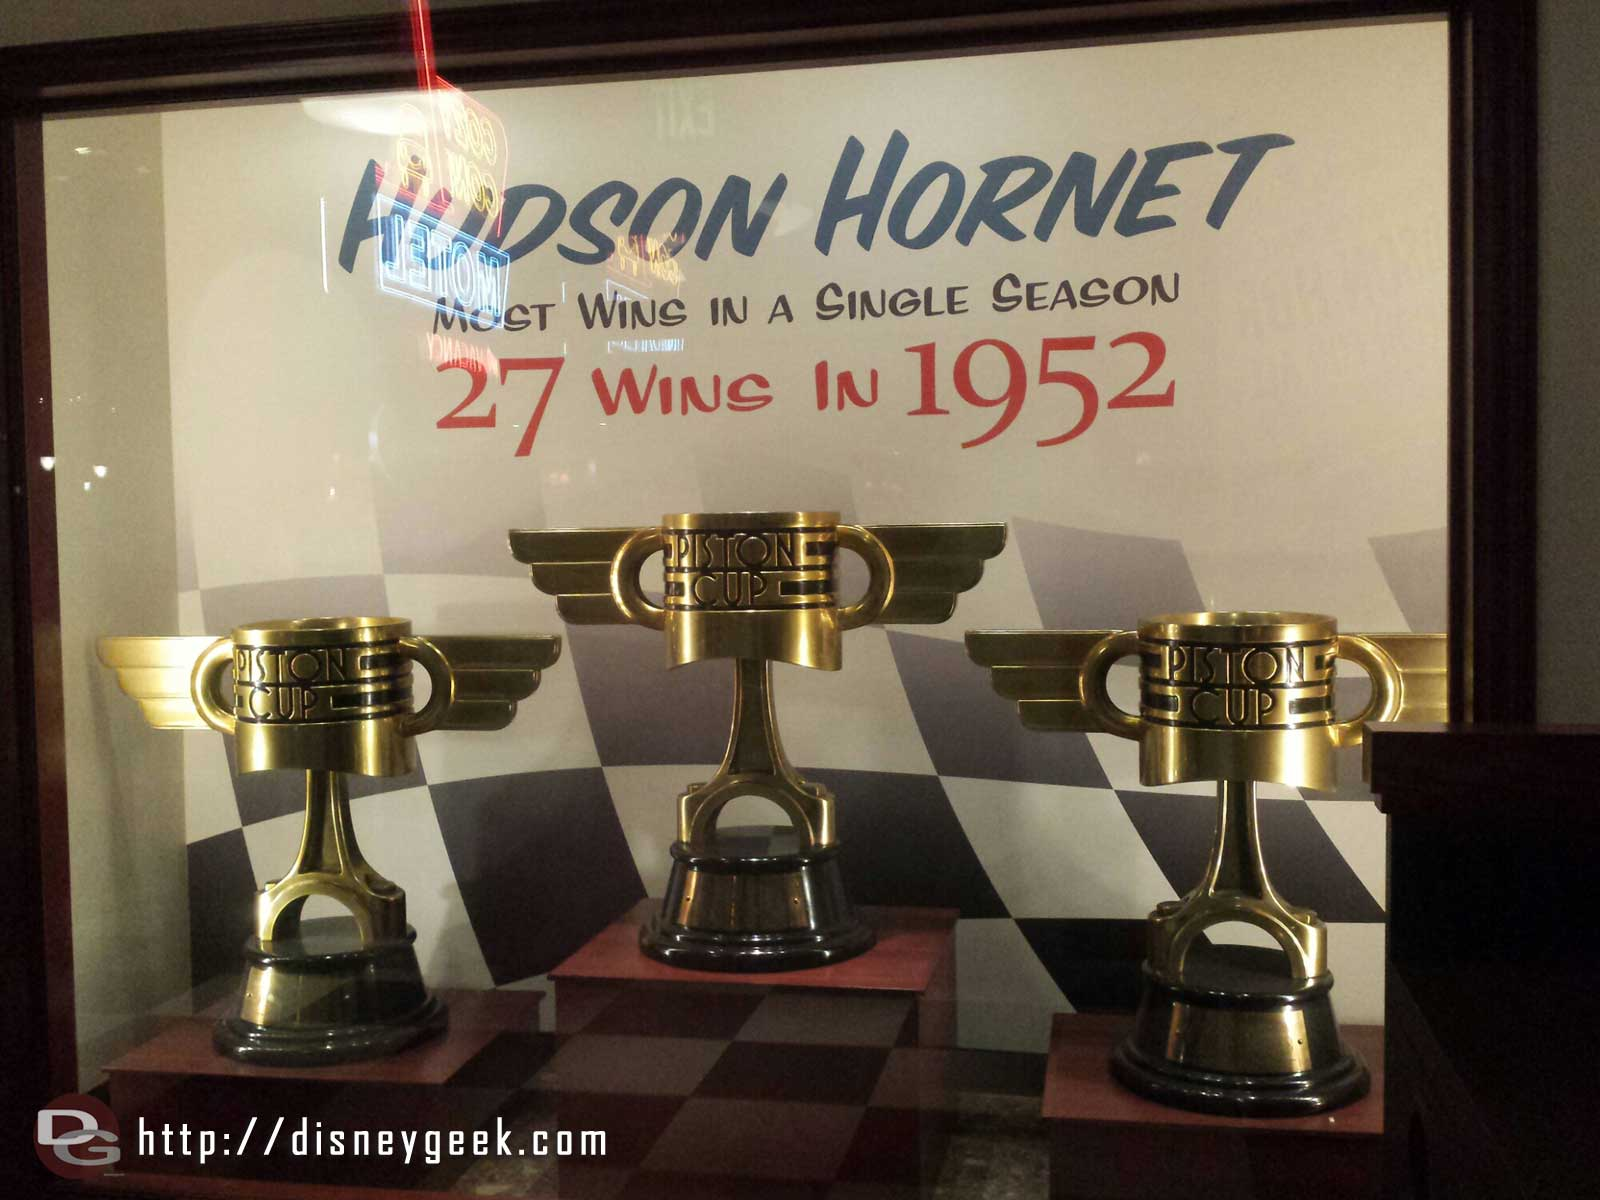 Piston Cup trophies, Hudson Hornet had 27 wins in 1952 #CarsLand